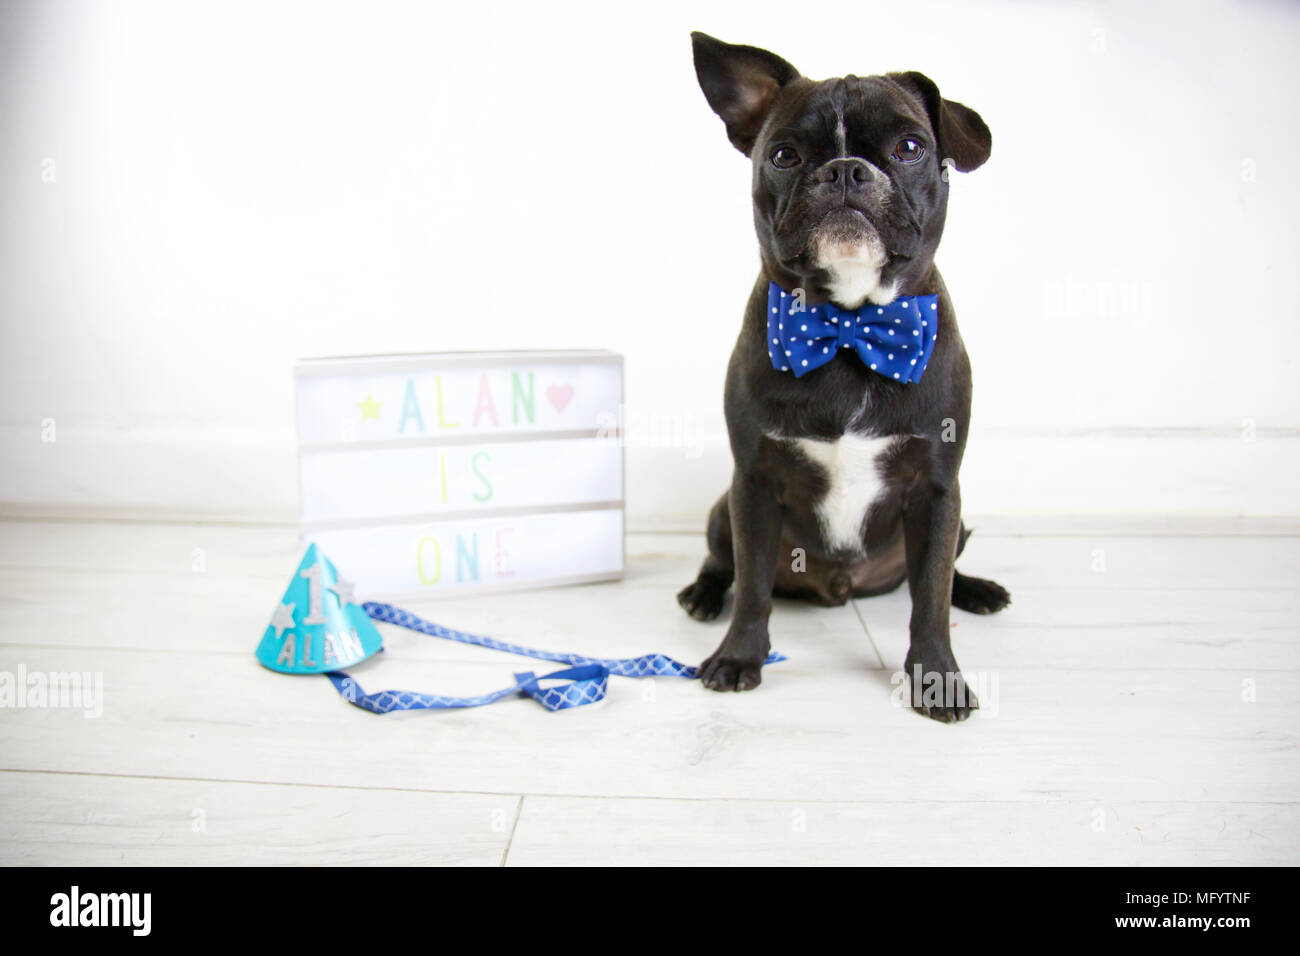 French Bulldog celebrates birthday with dog cake smash. Turning one wearing party hat and bow tie with lightbox and dog birthday cake. One ear up. - Stock Image